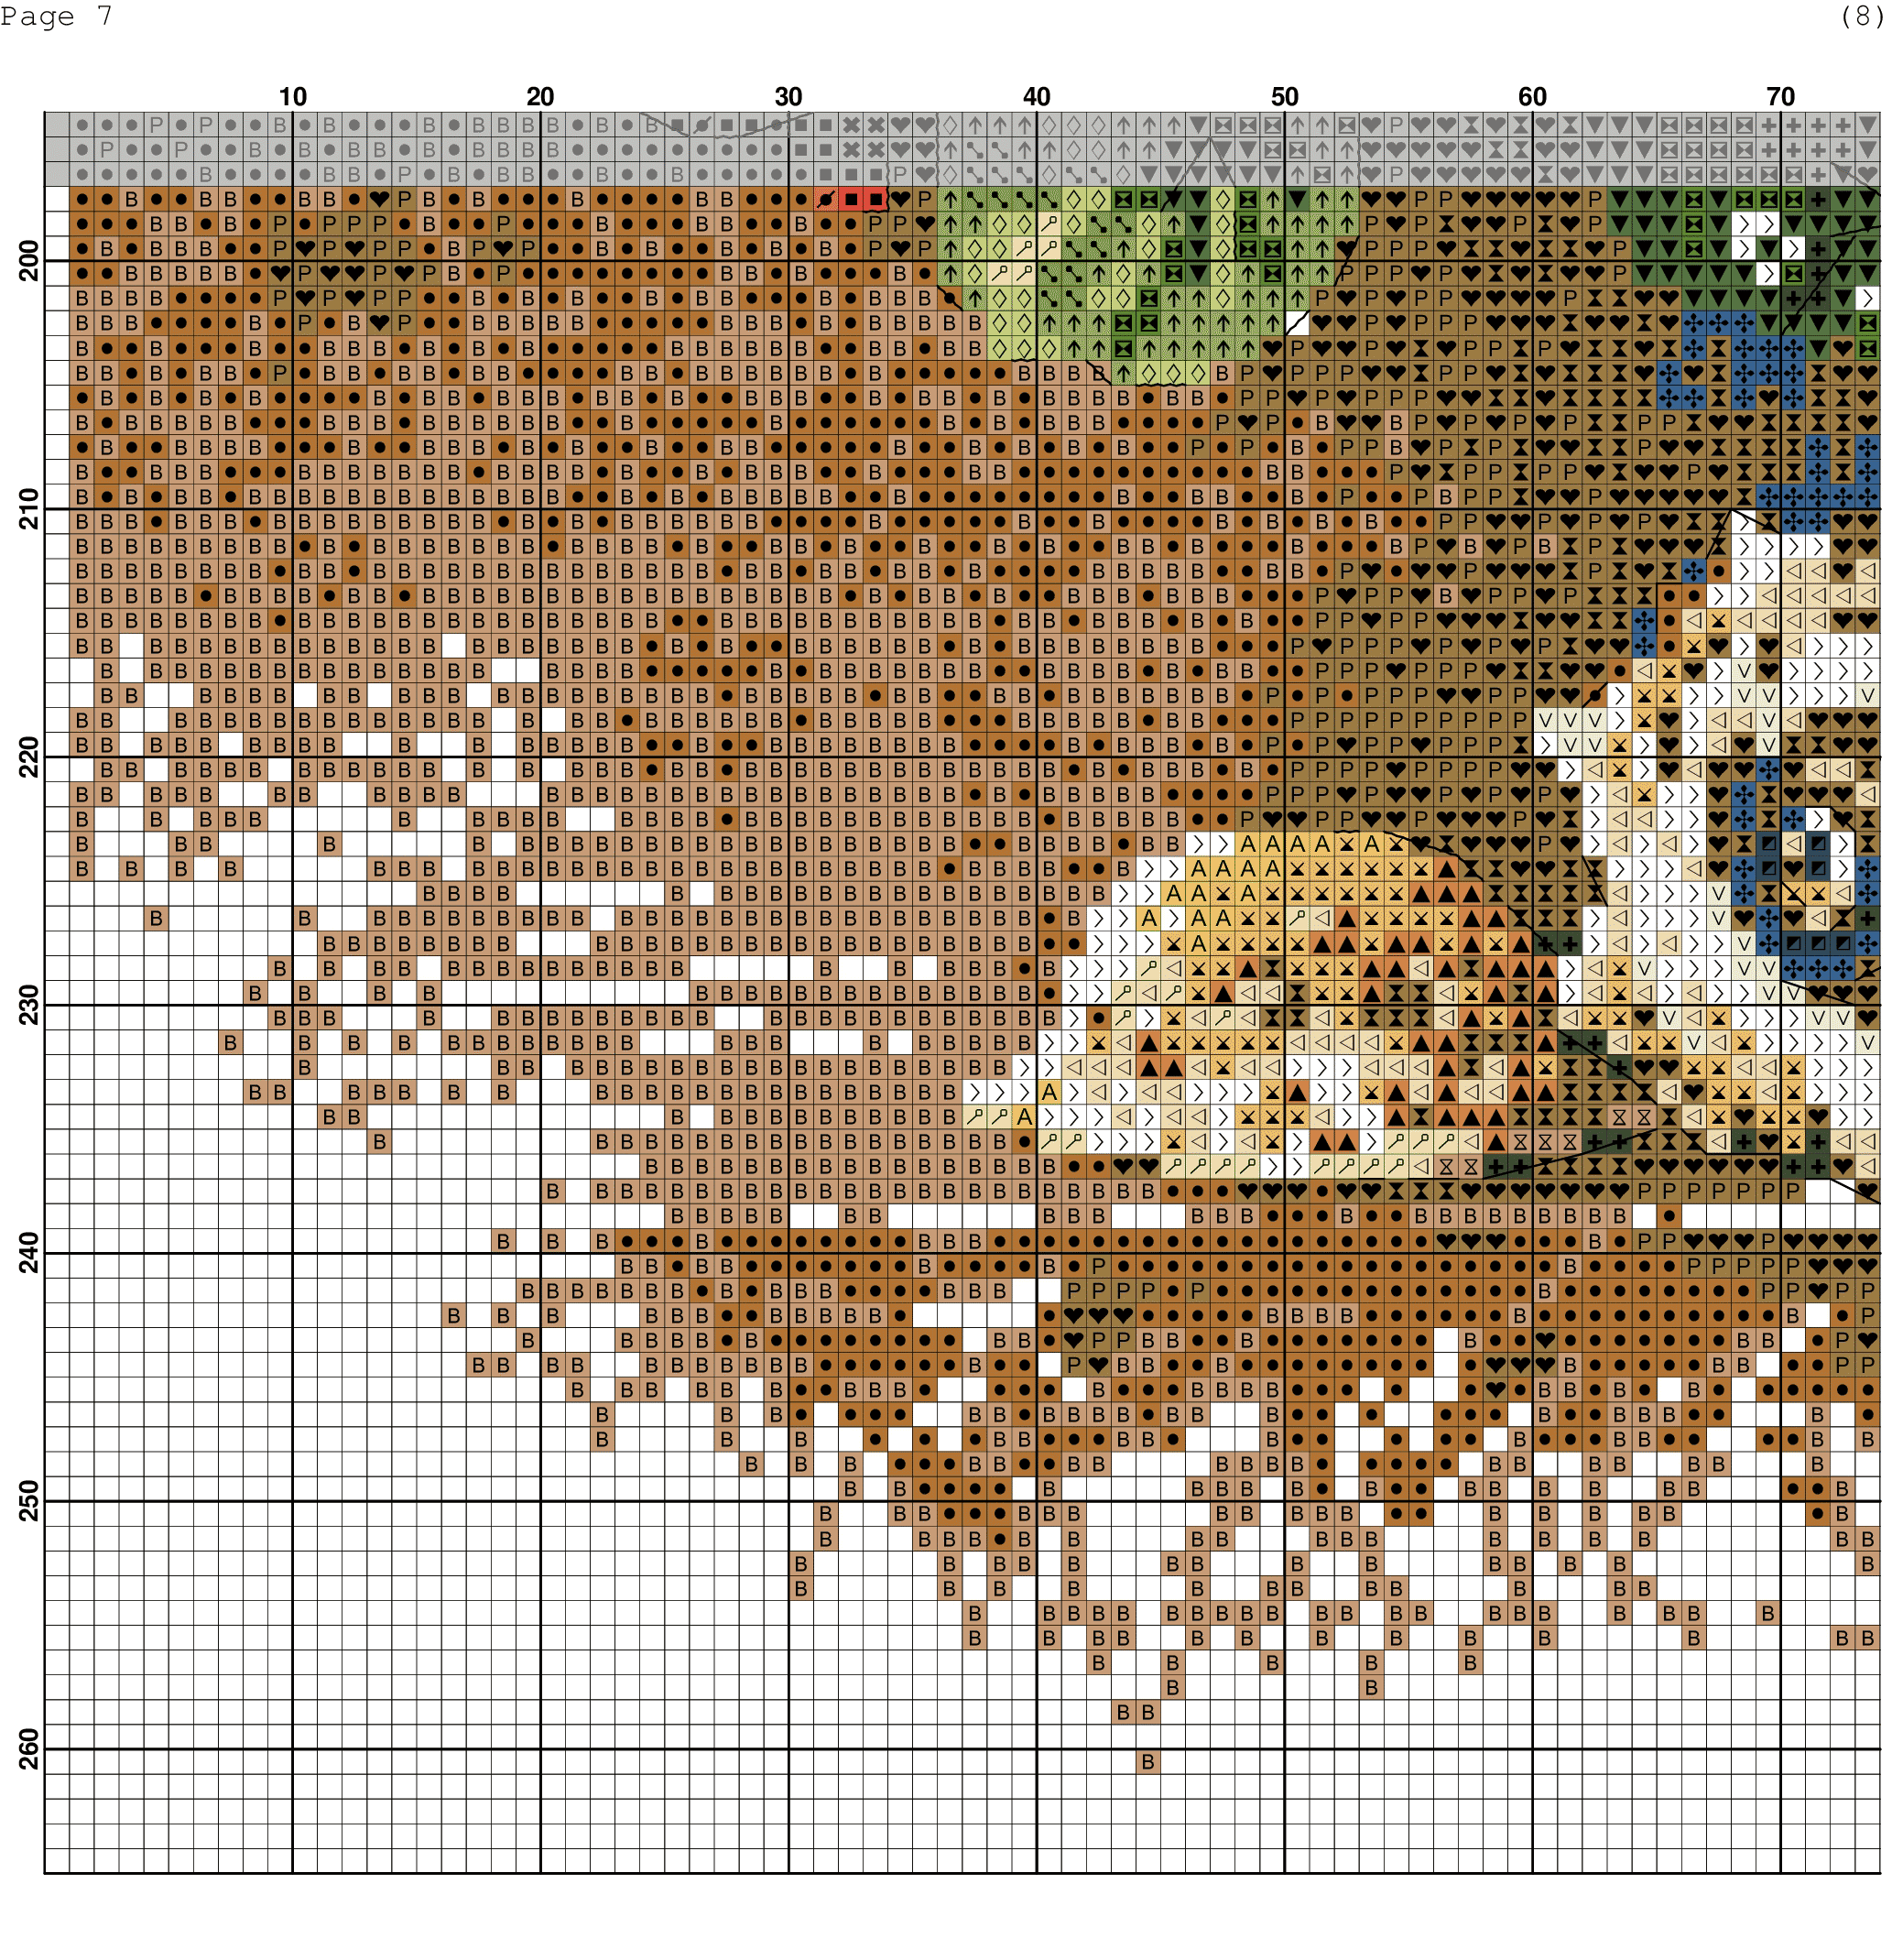 wildflowers-cross-stitch-patterns-(8)